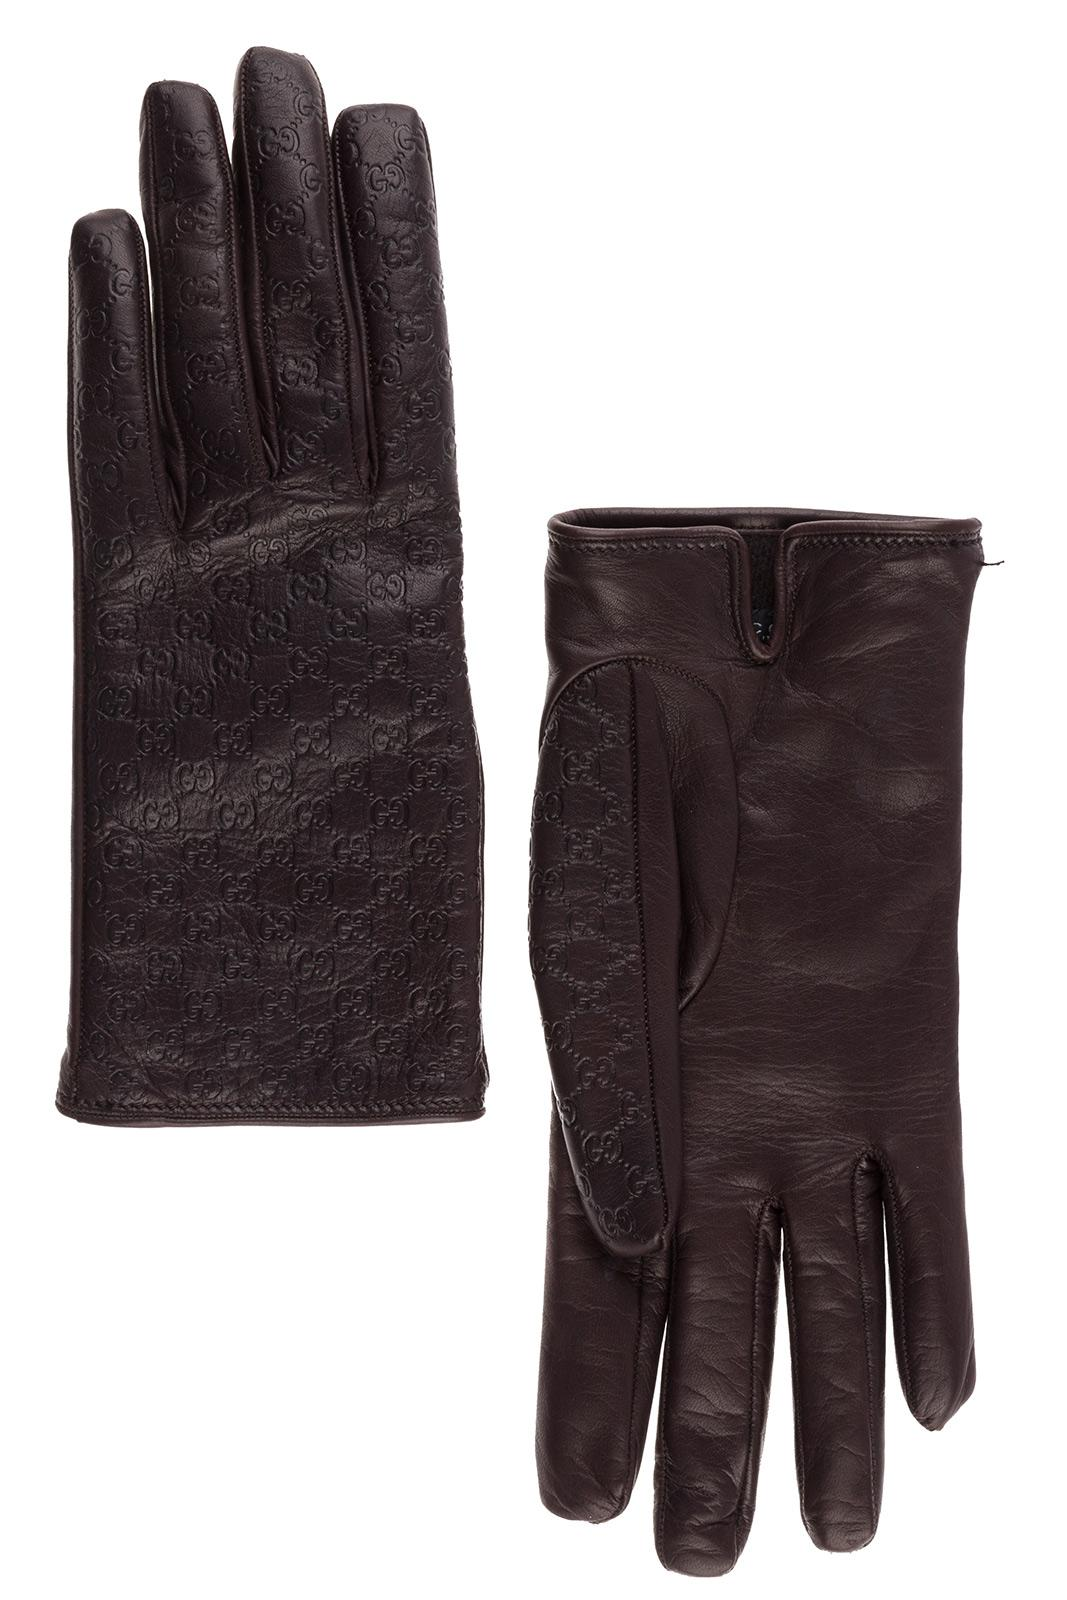 680b8ea7792 Gucci Women s Leather Gloves In Brown